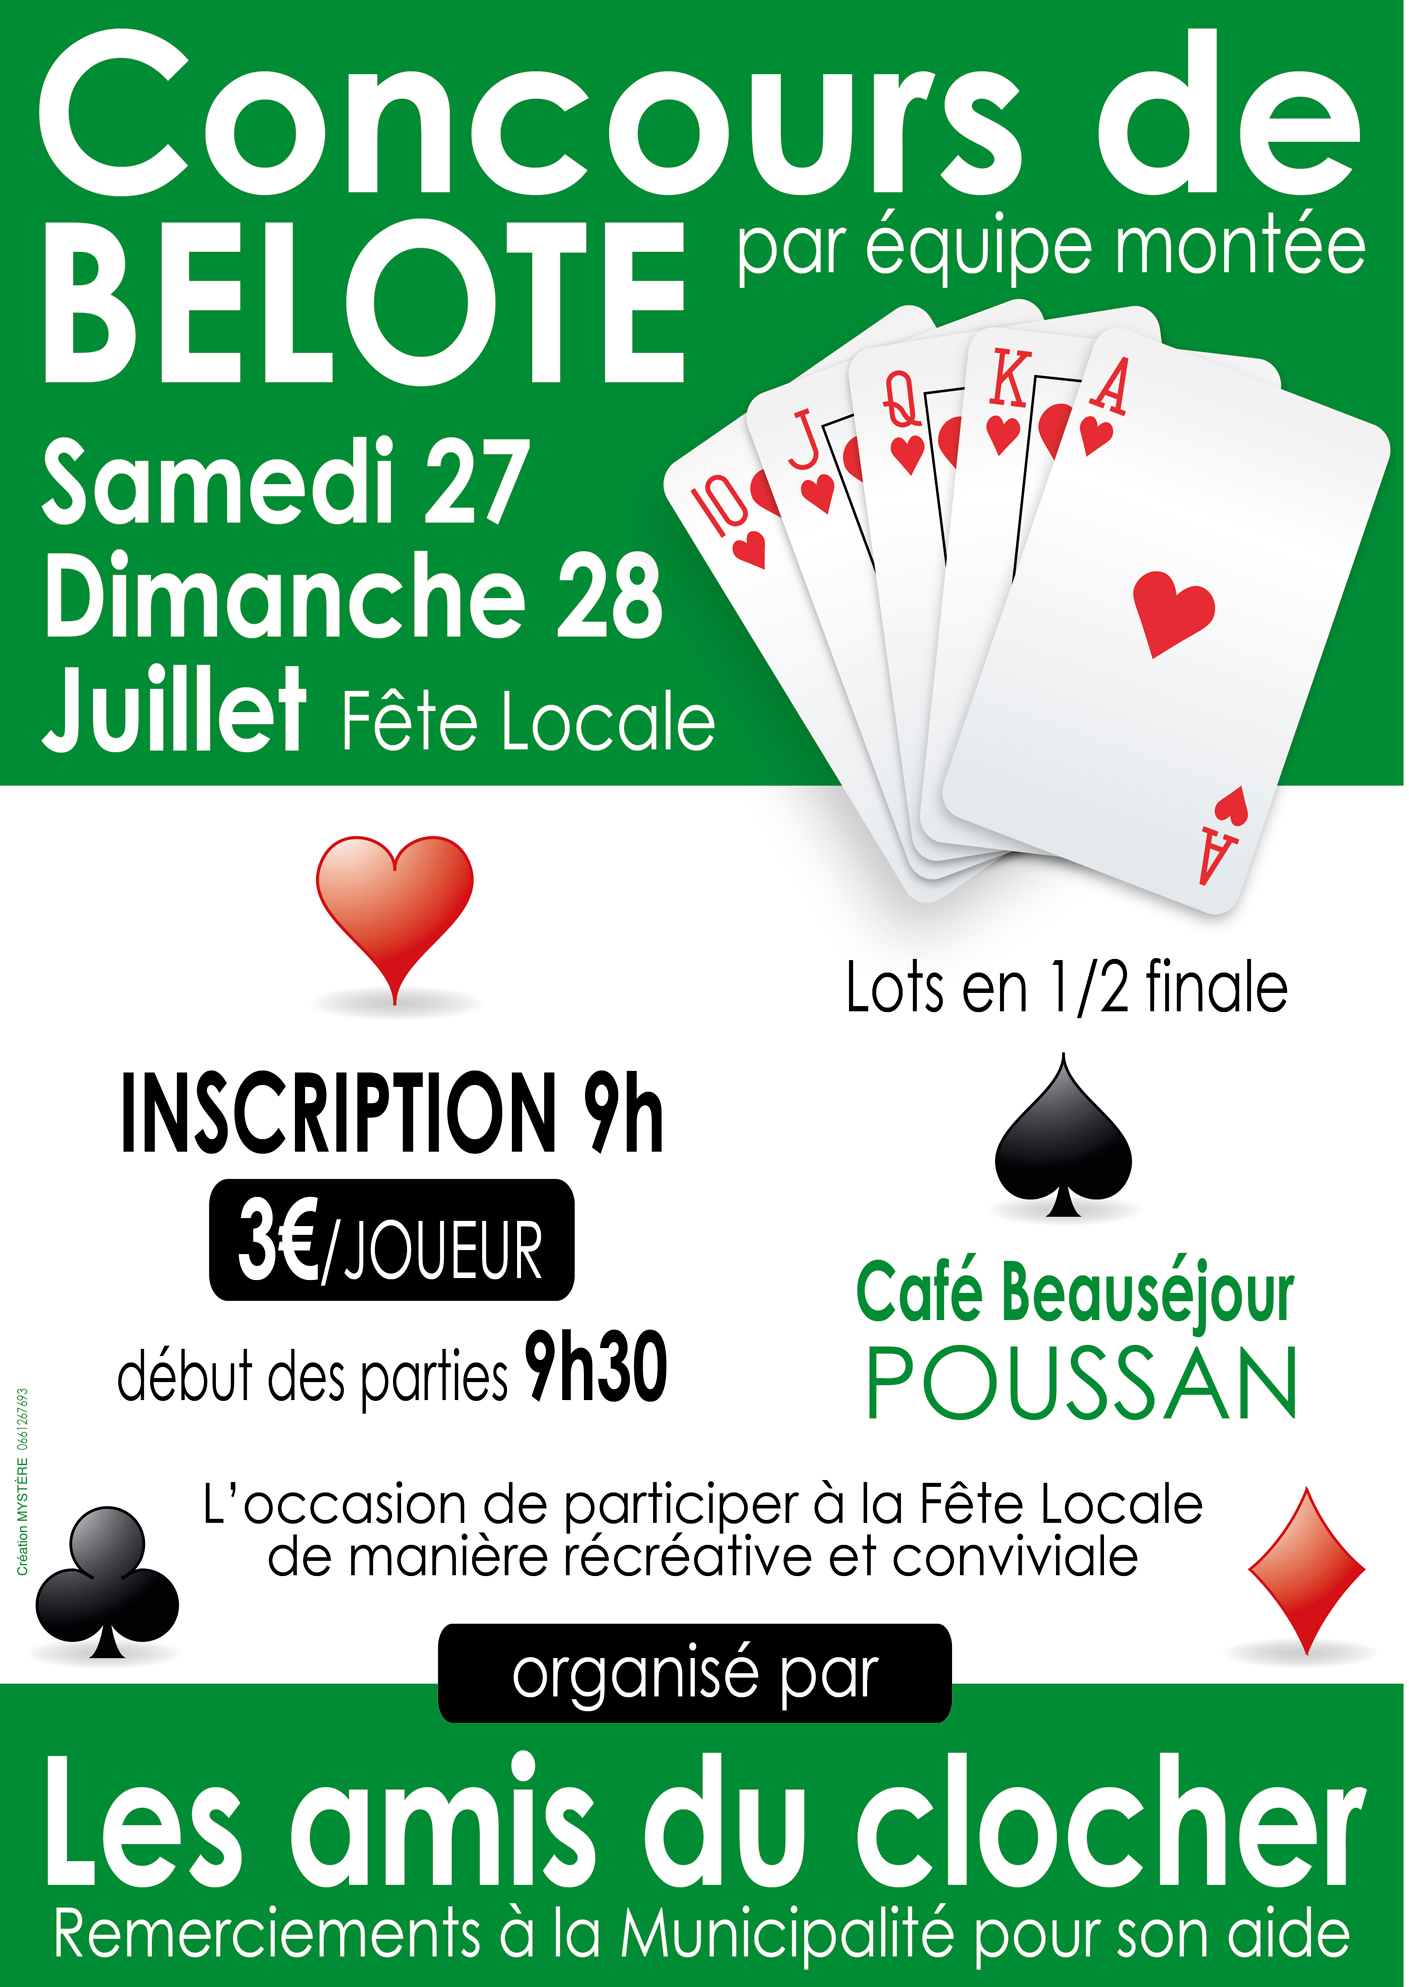 boleteaffiche-belote